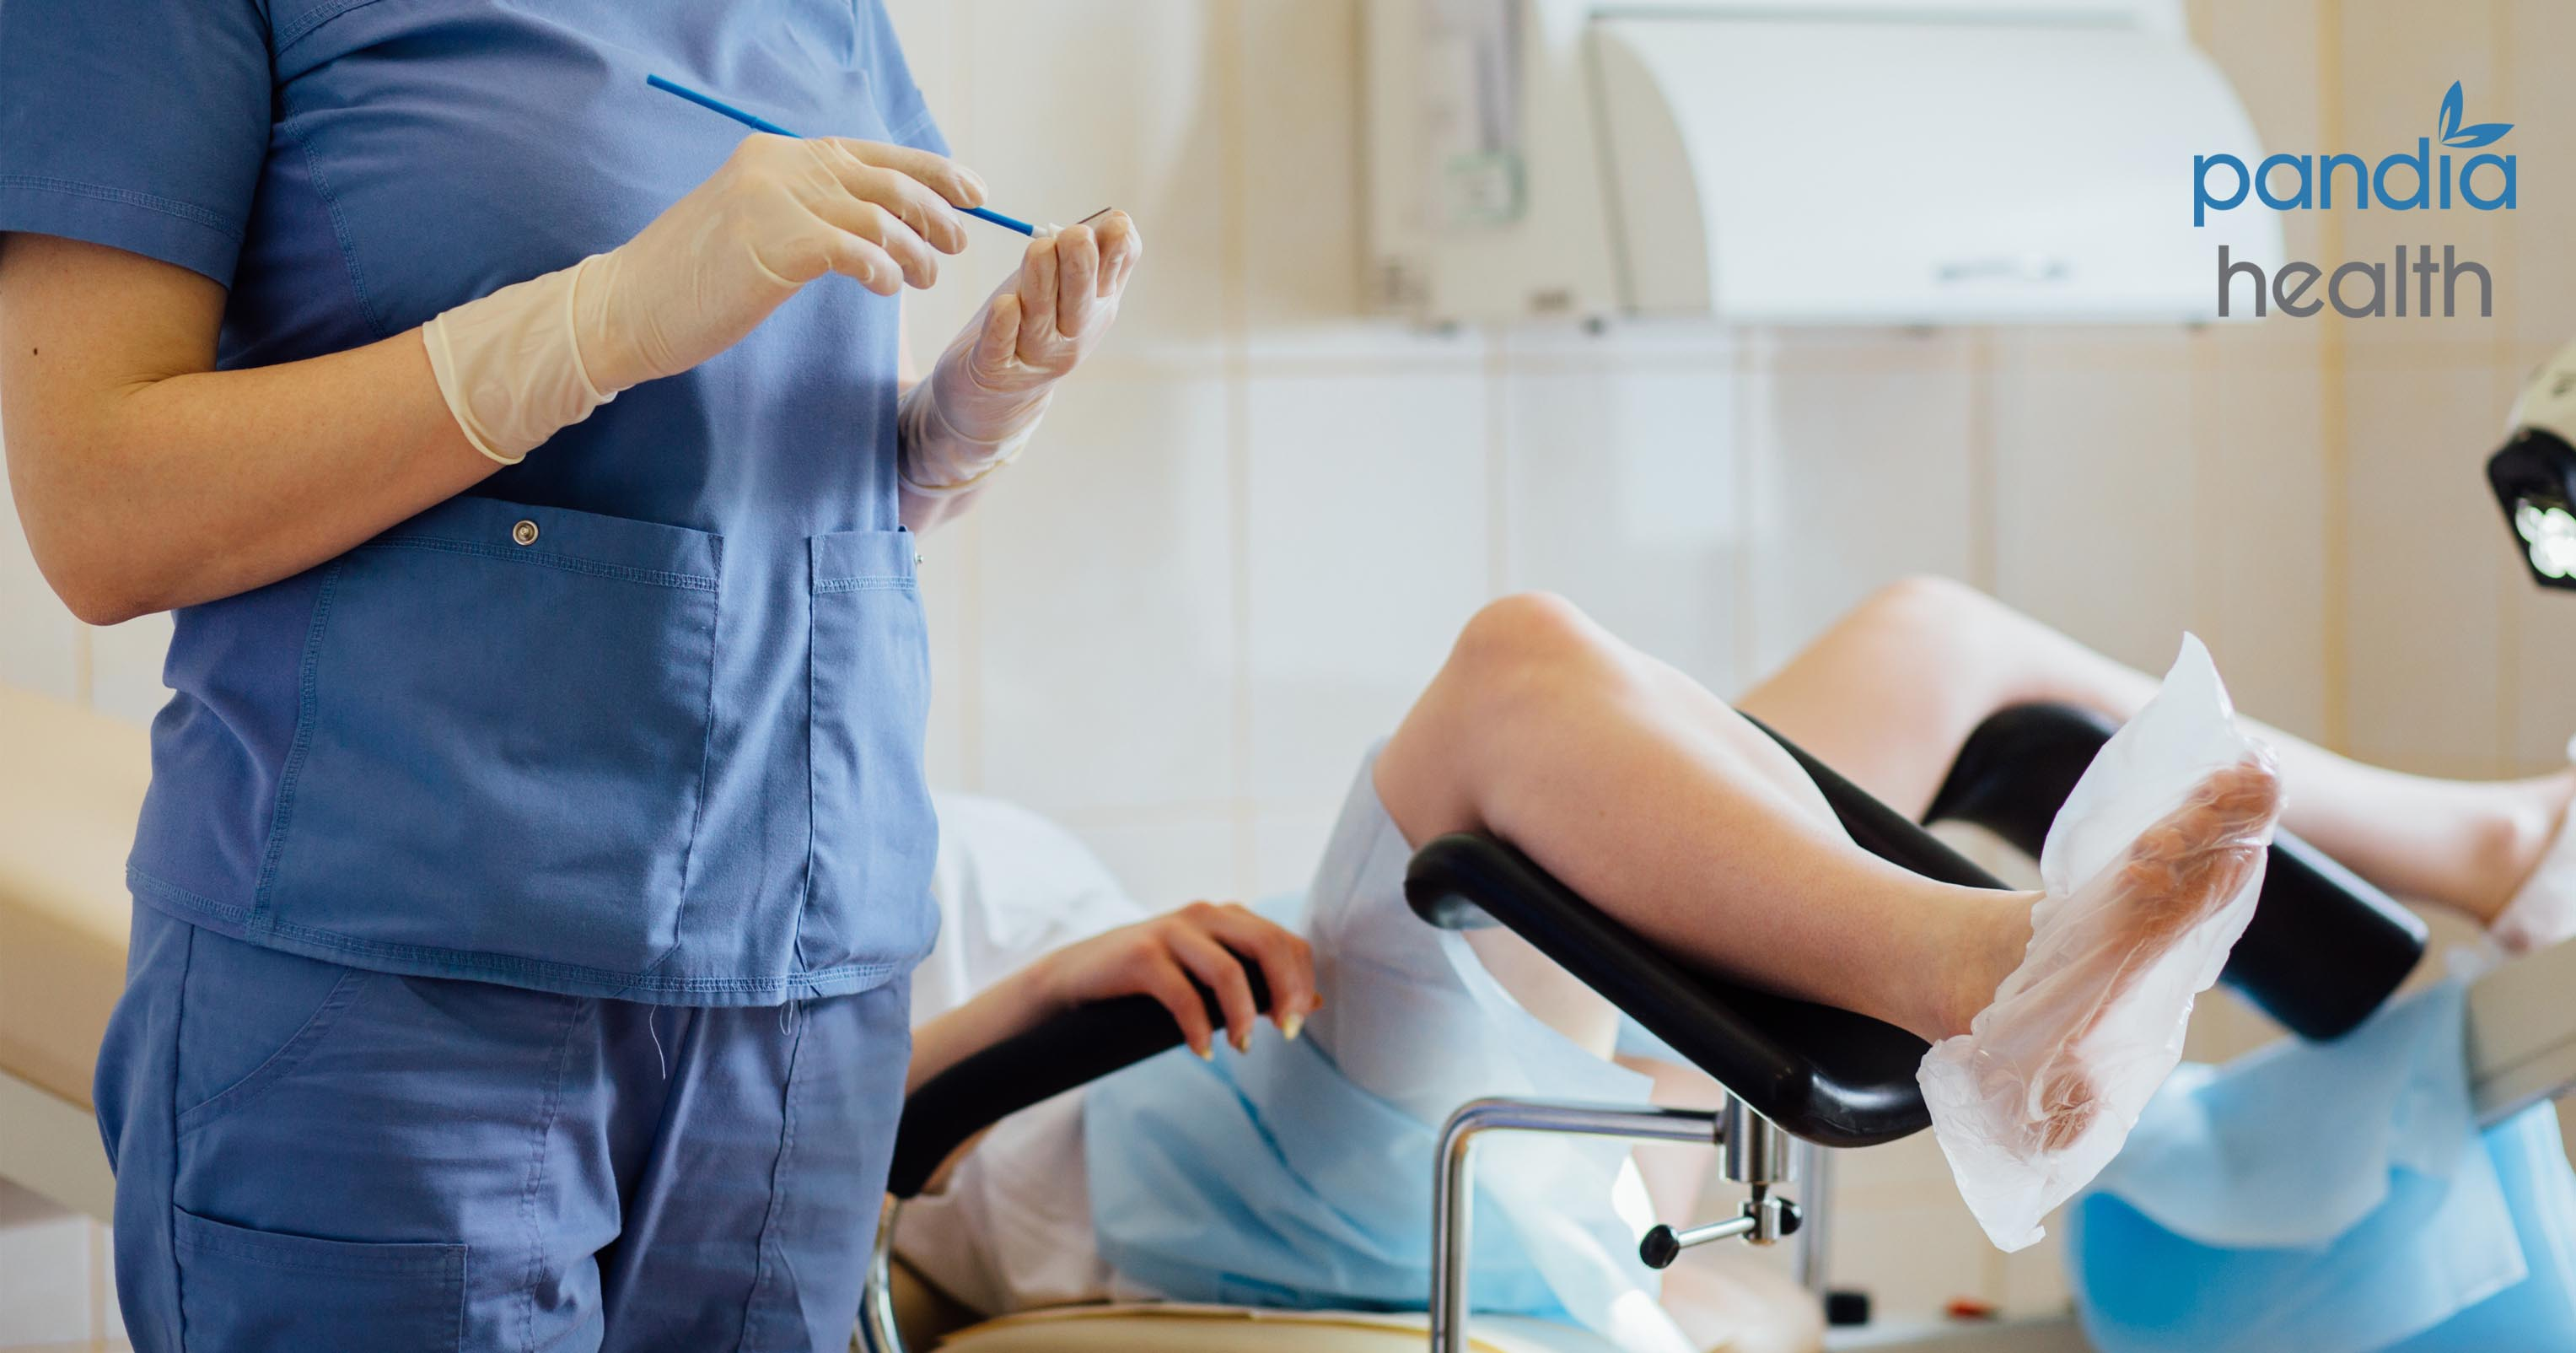 Woman at gynecologist appointment for pap smear